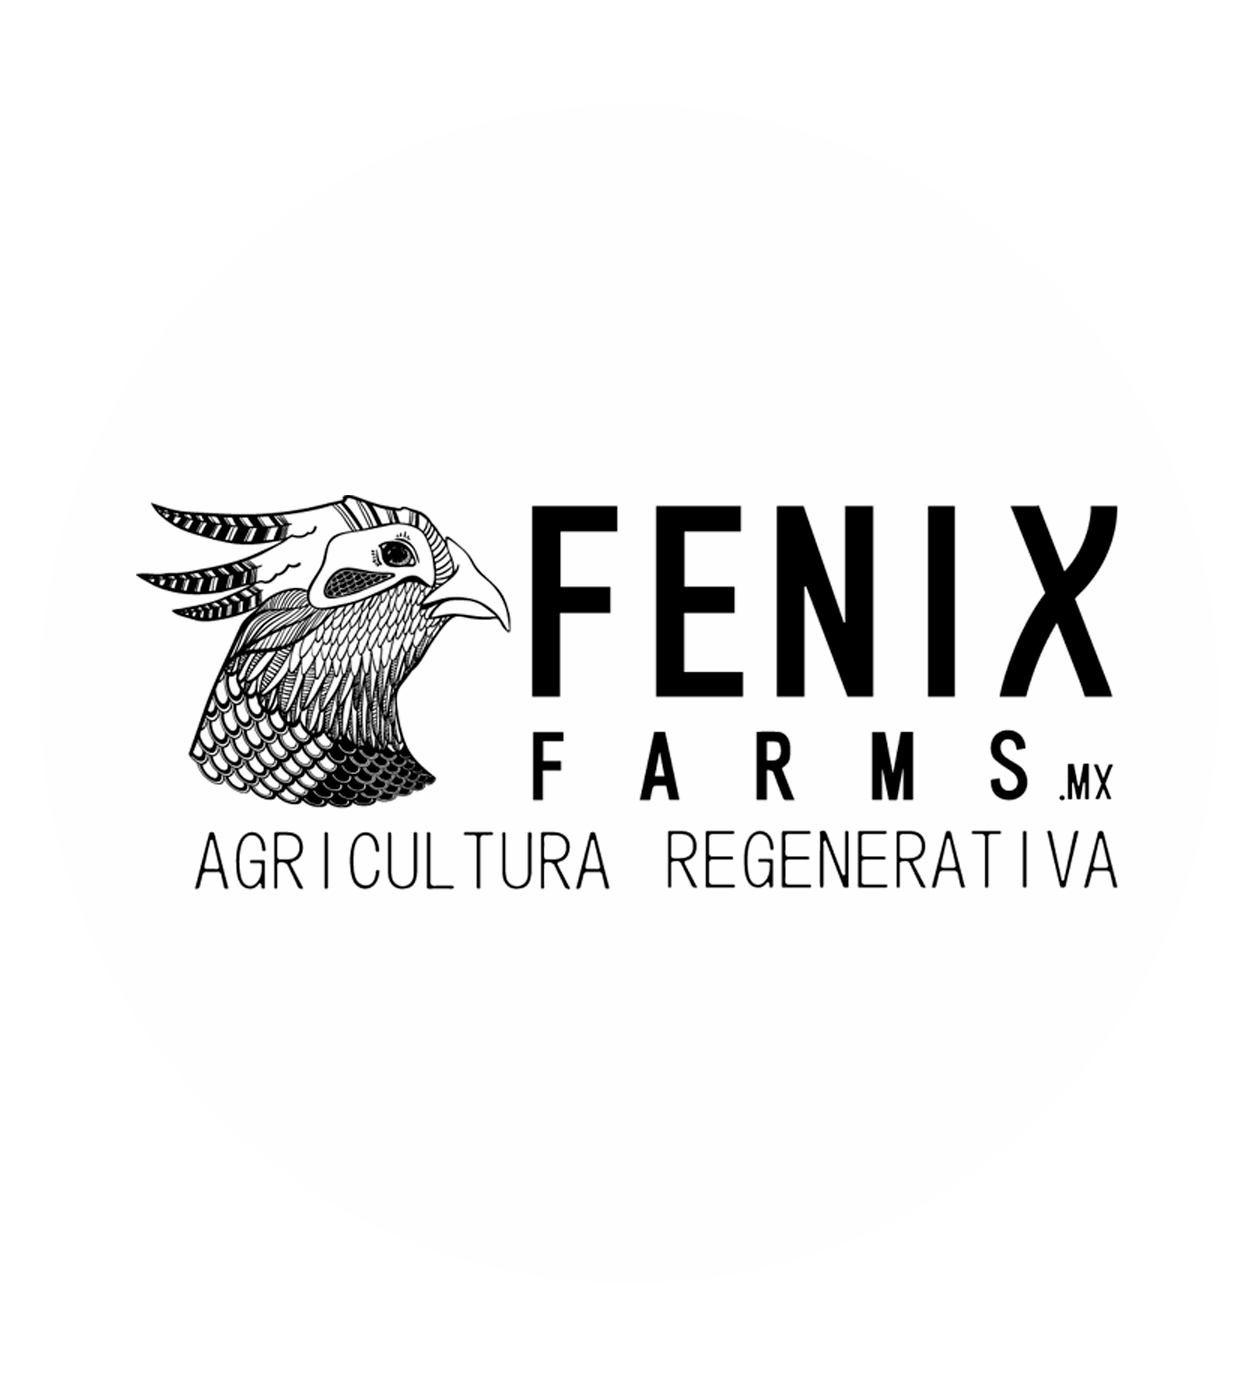 Fénix Farms